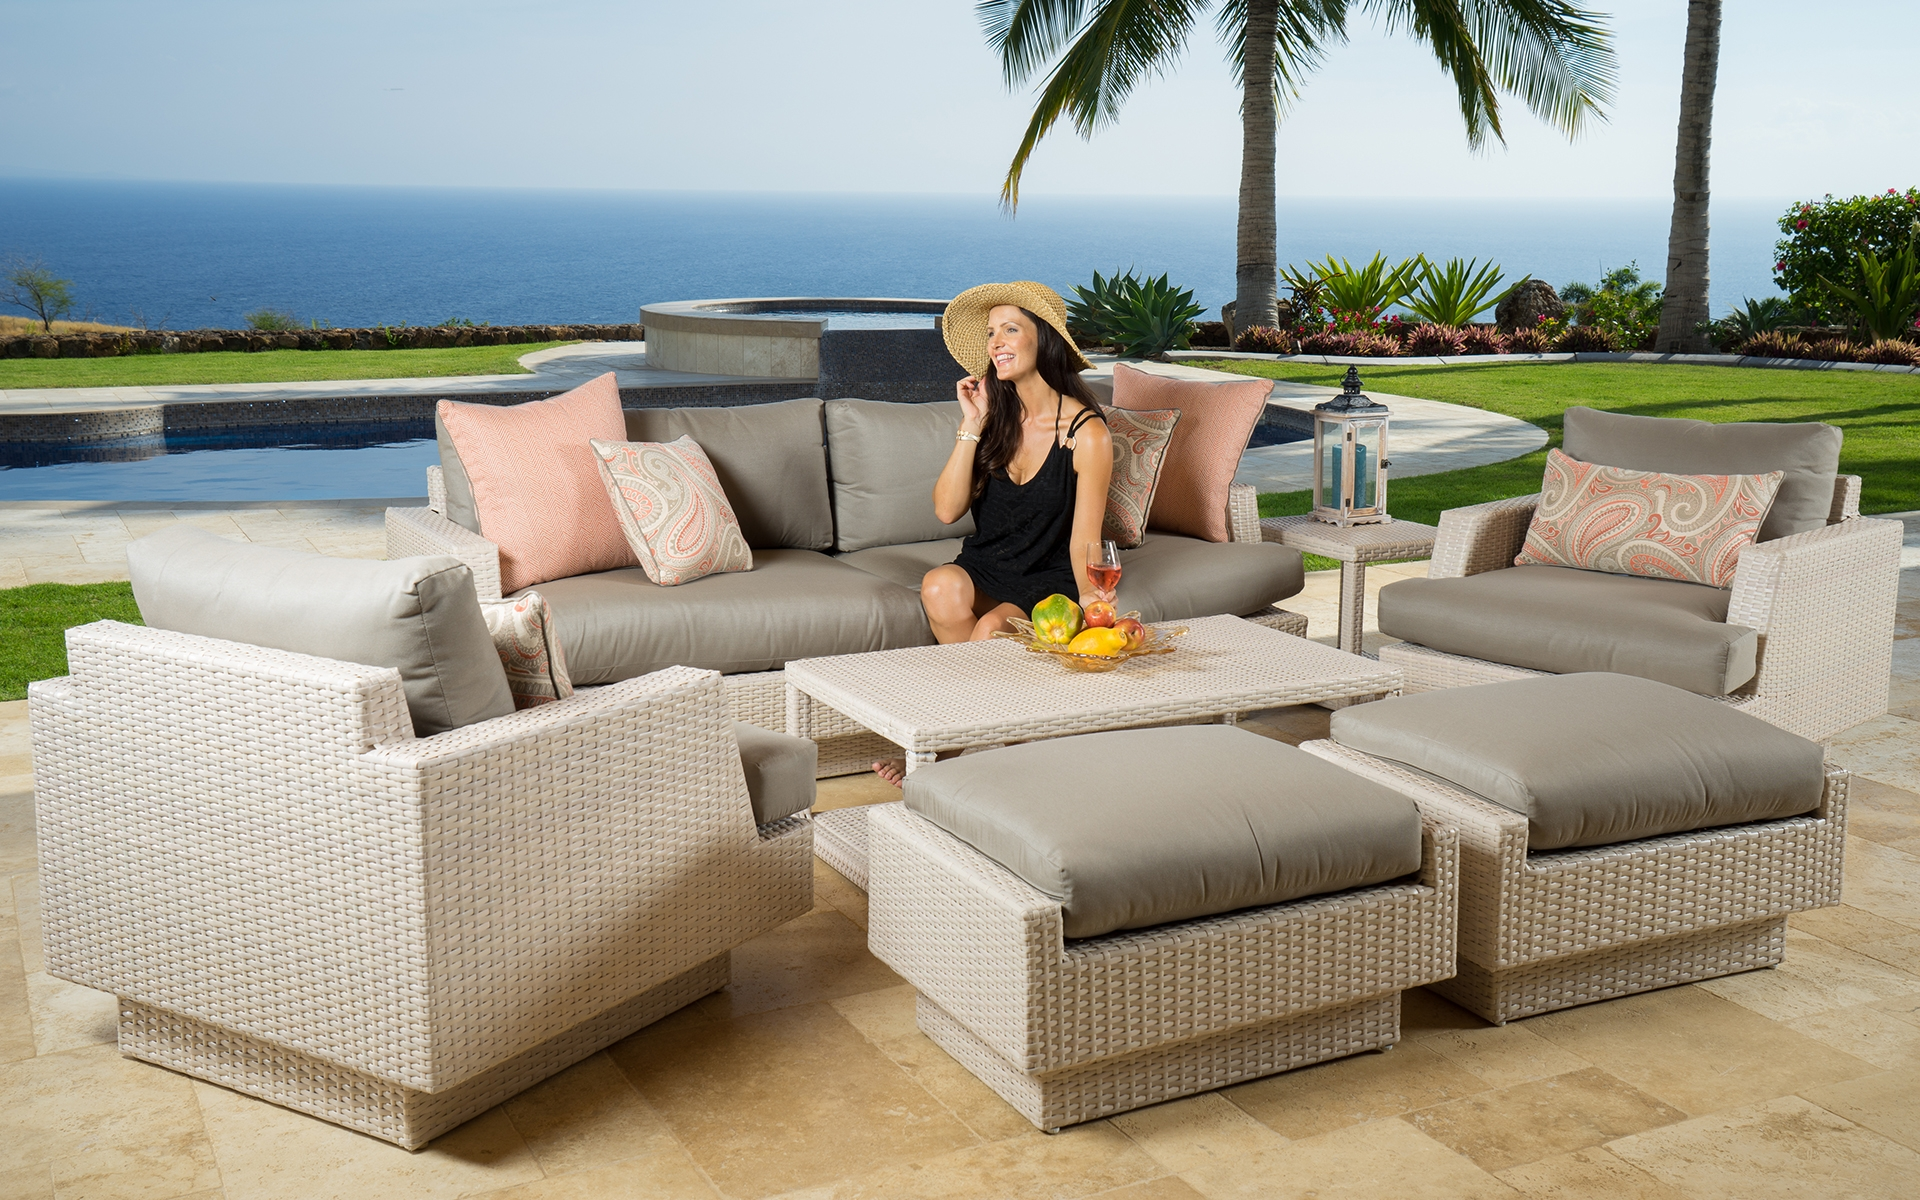 outdoor furniture outlet layjao rh layjao com outlet patio furniture red deer outlet patio furniture near me